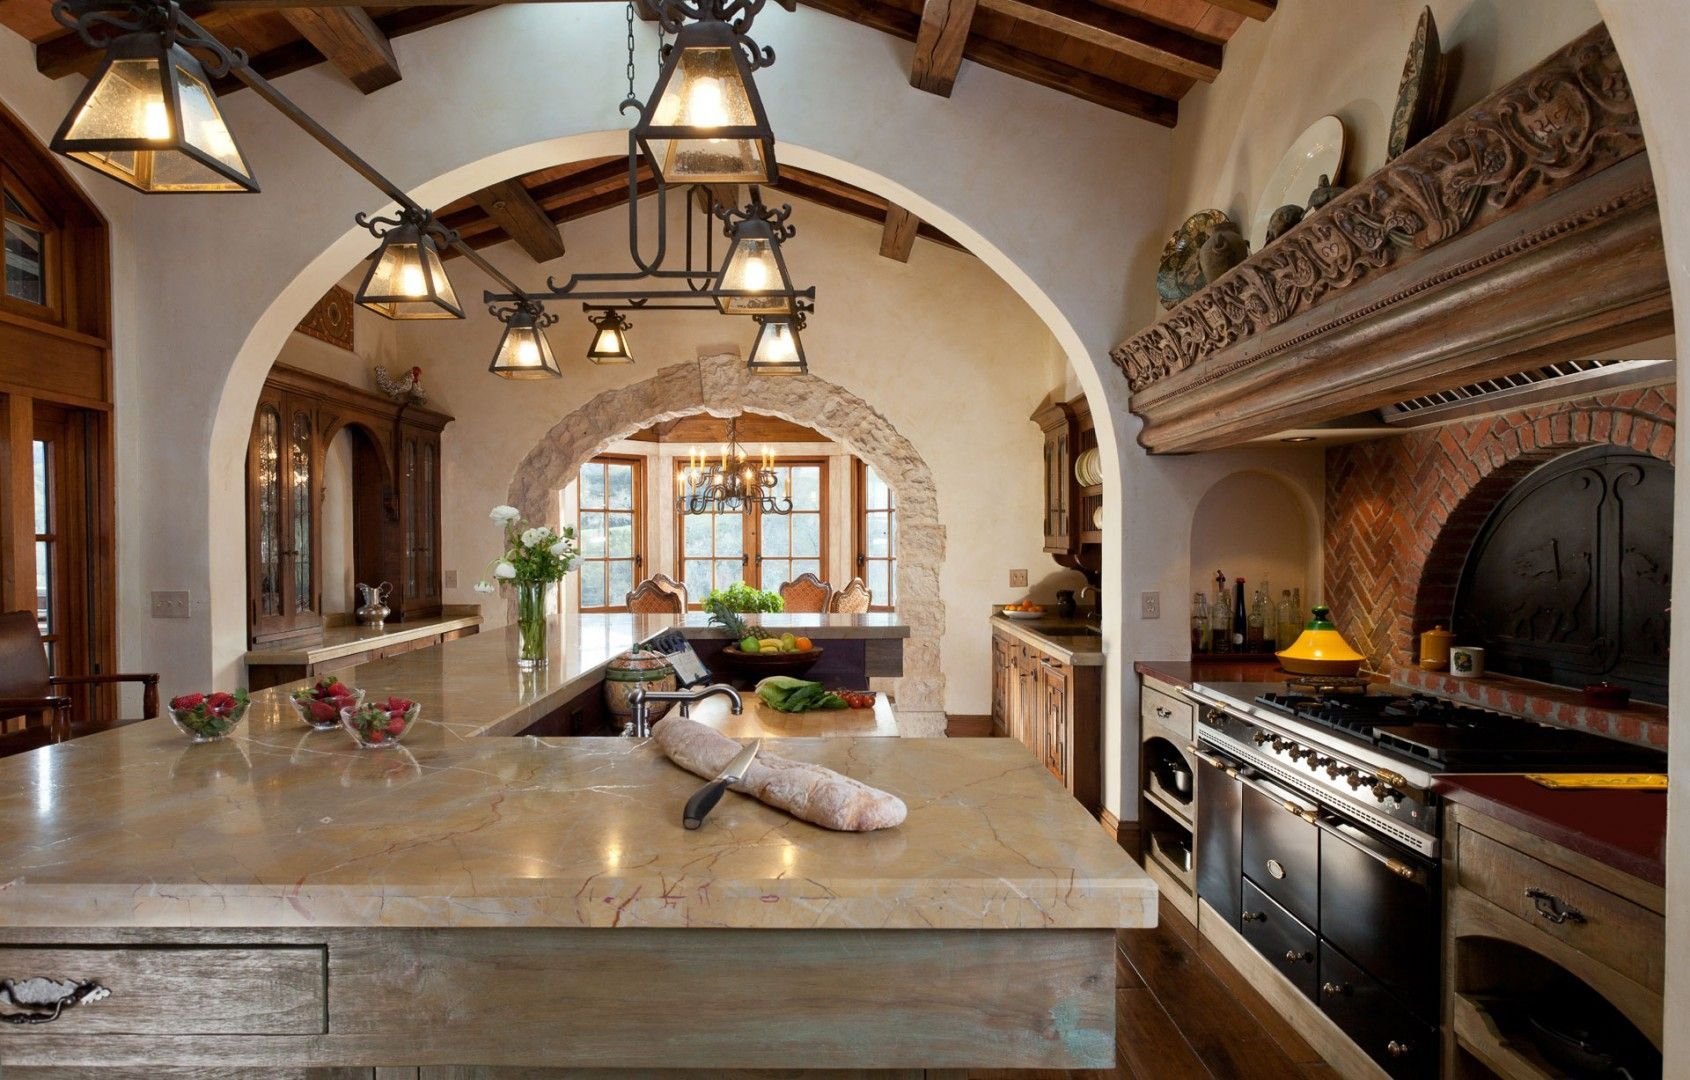 California Style Kitchen Of Spanish Colonial Kitchens A Little Dark But Love The